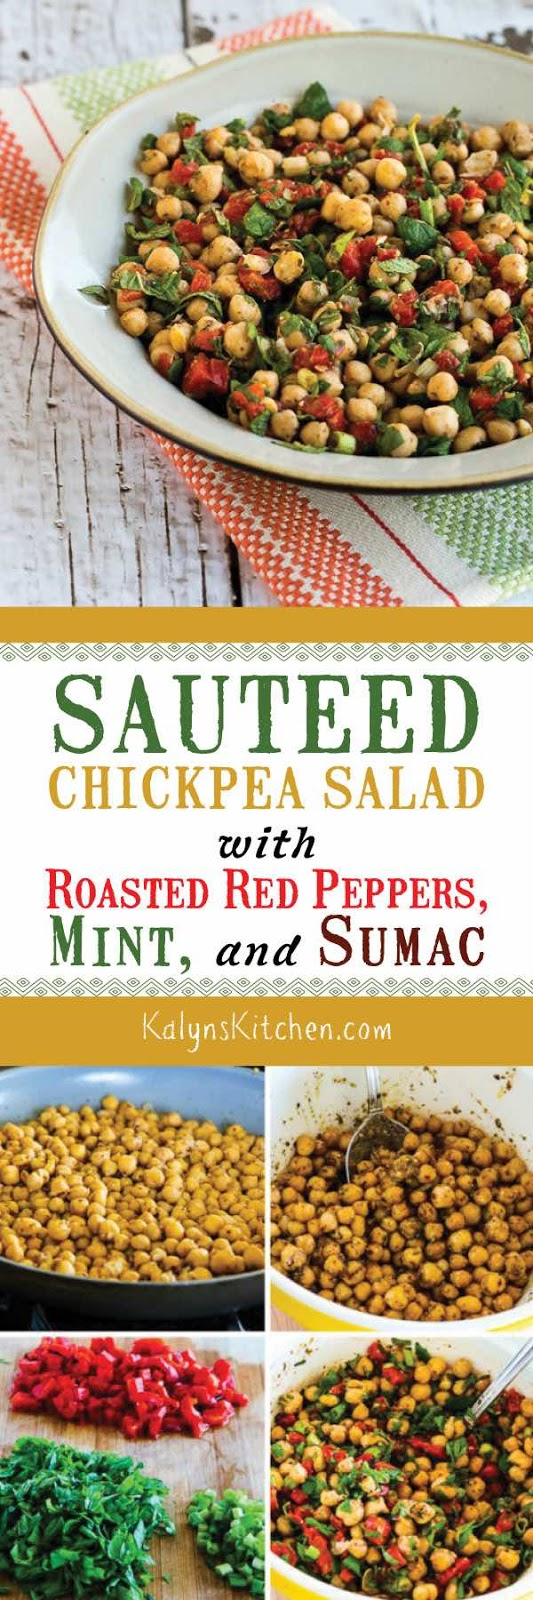 Sauteed Chickpea Salad with Roasted Red Peppers, Mint, and ...